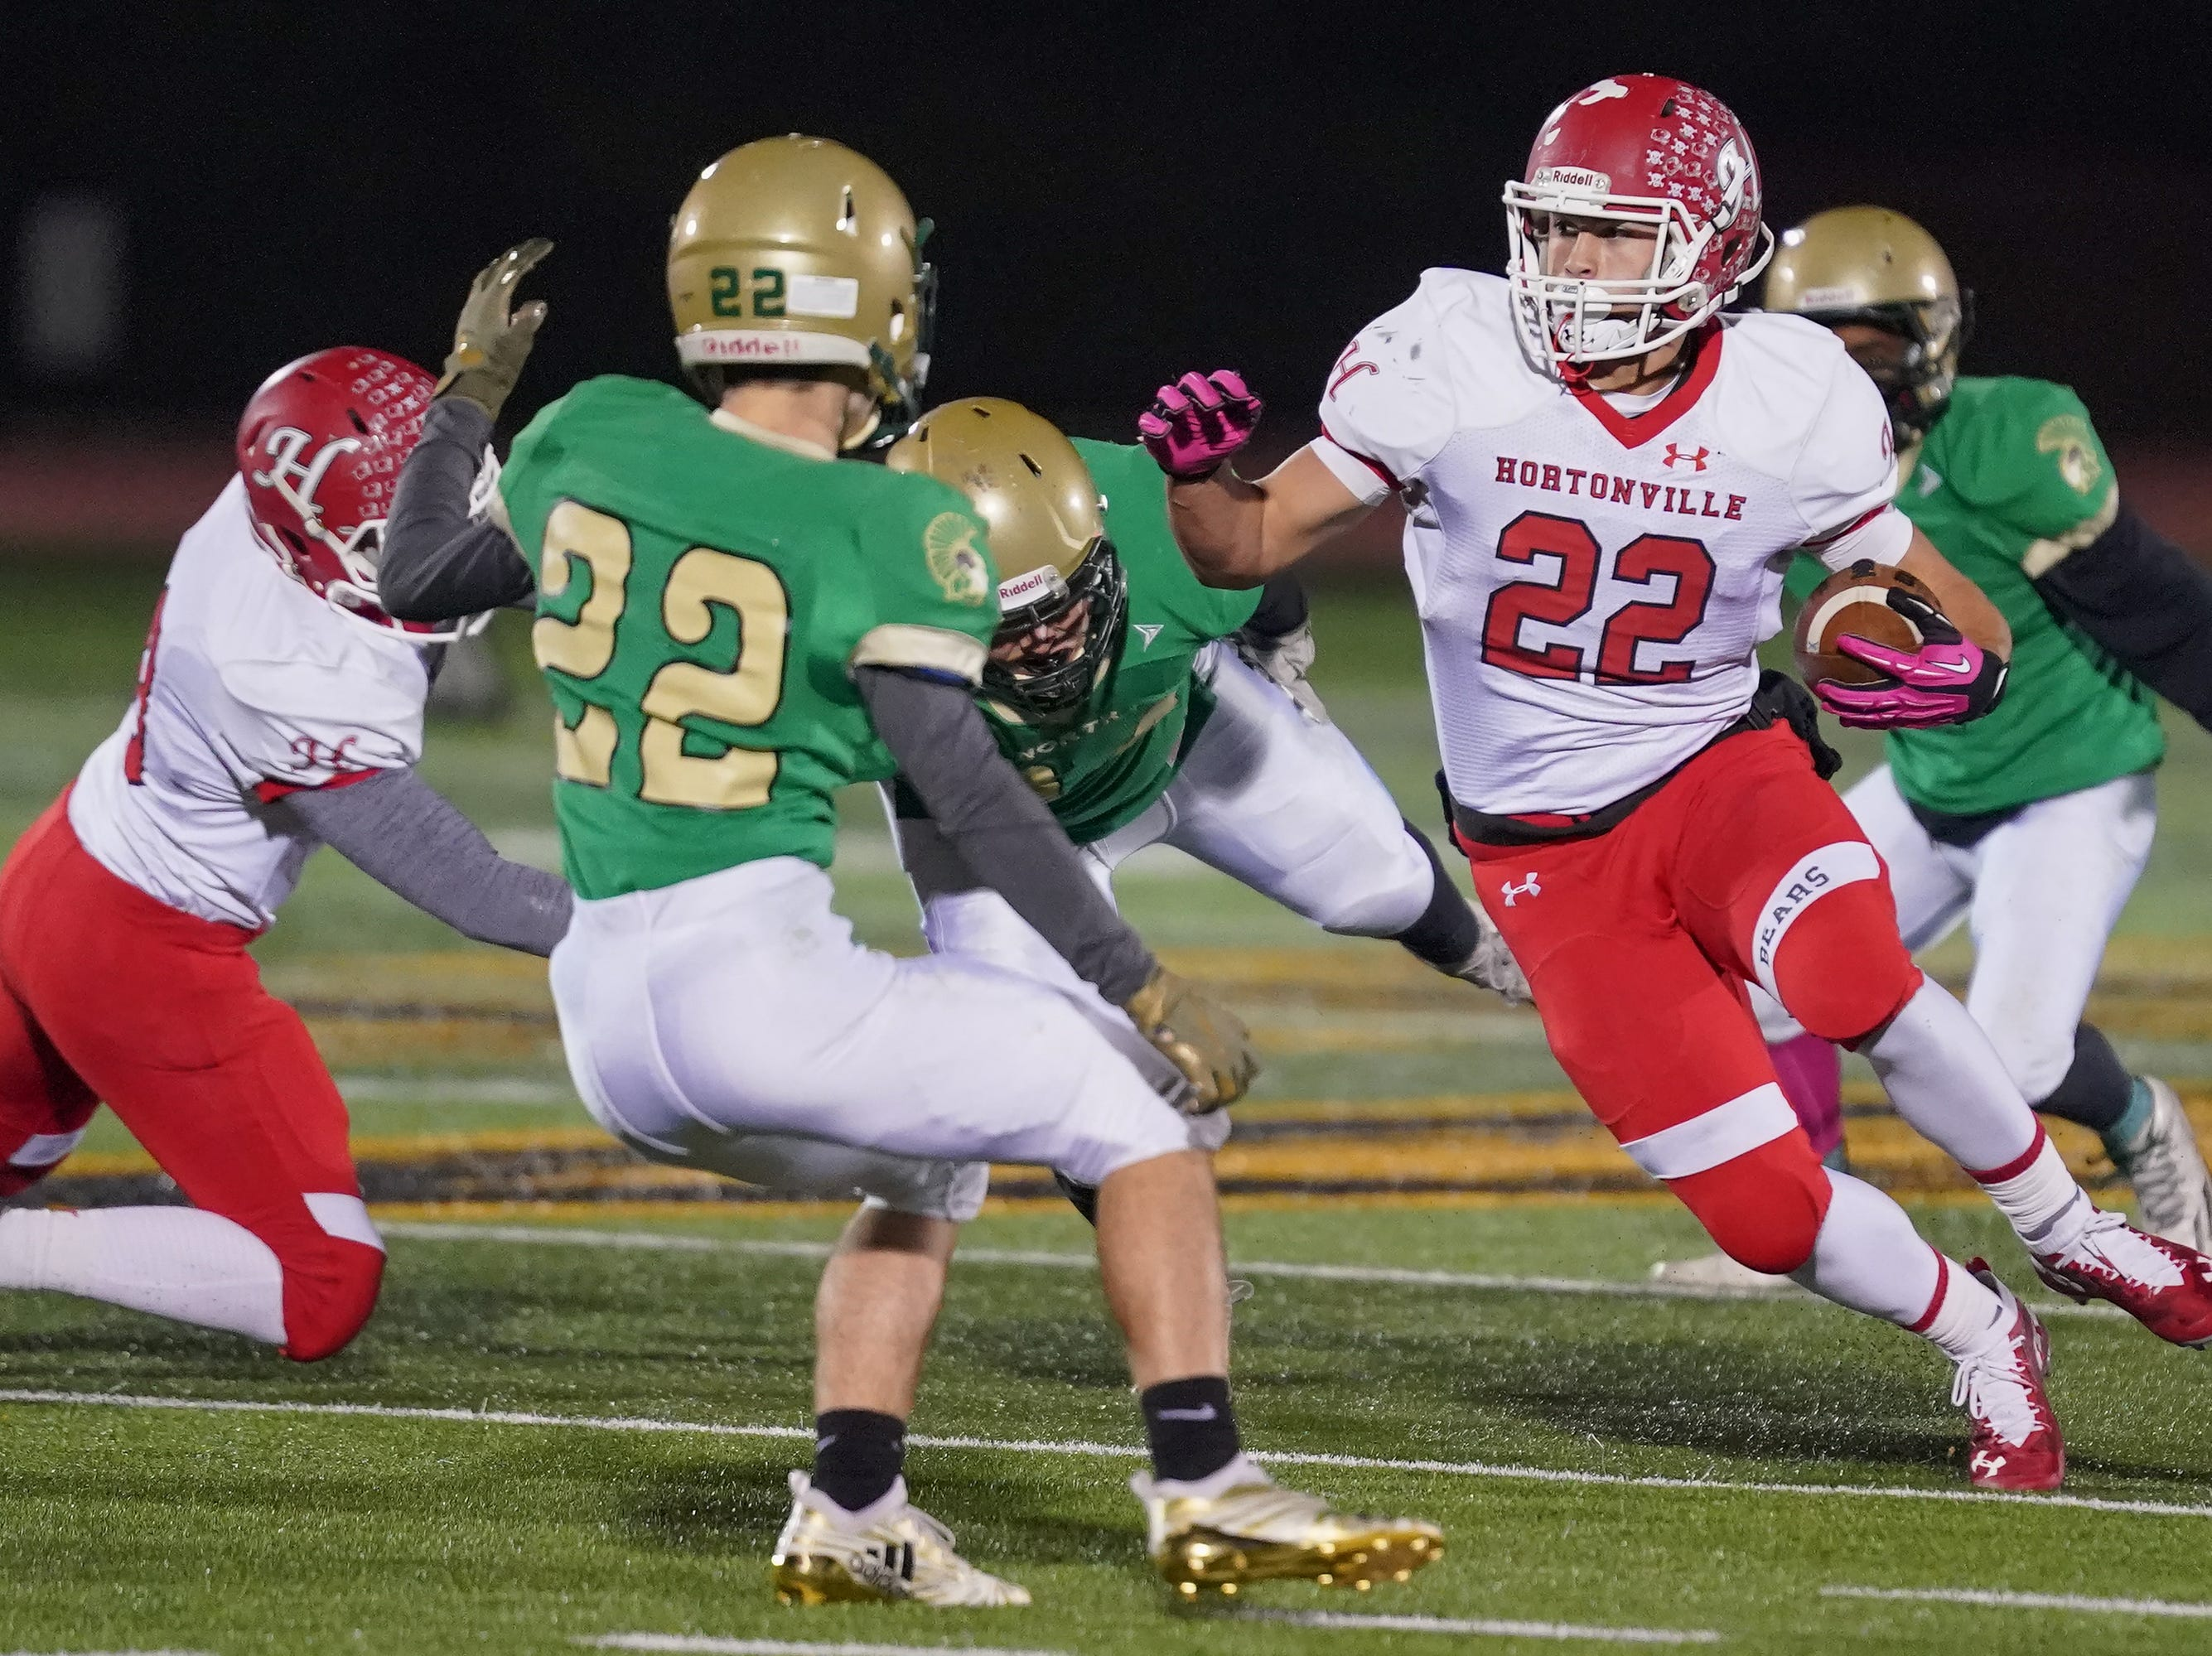 Jose Concepcion (22) of Hortonville looks for running room in the first half. The Oshkosh North Spartans hosted the Hortonville Polar Bears in an FVA-South conference matchup Friday evening, October 12, 2018 at J. J. Keller Field at Titan Stadium.